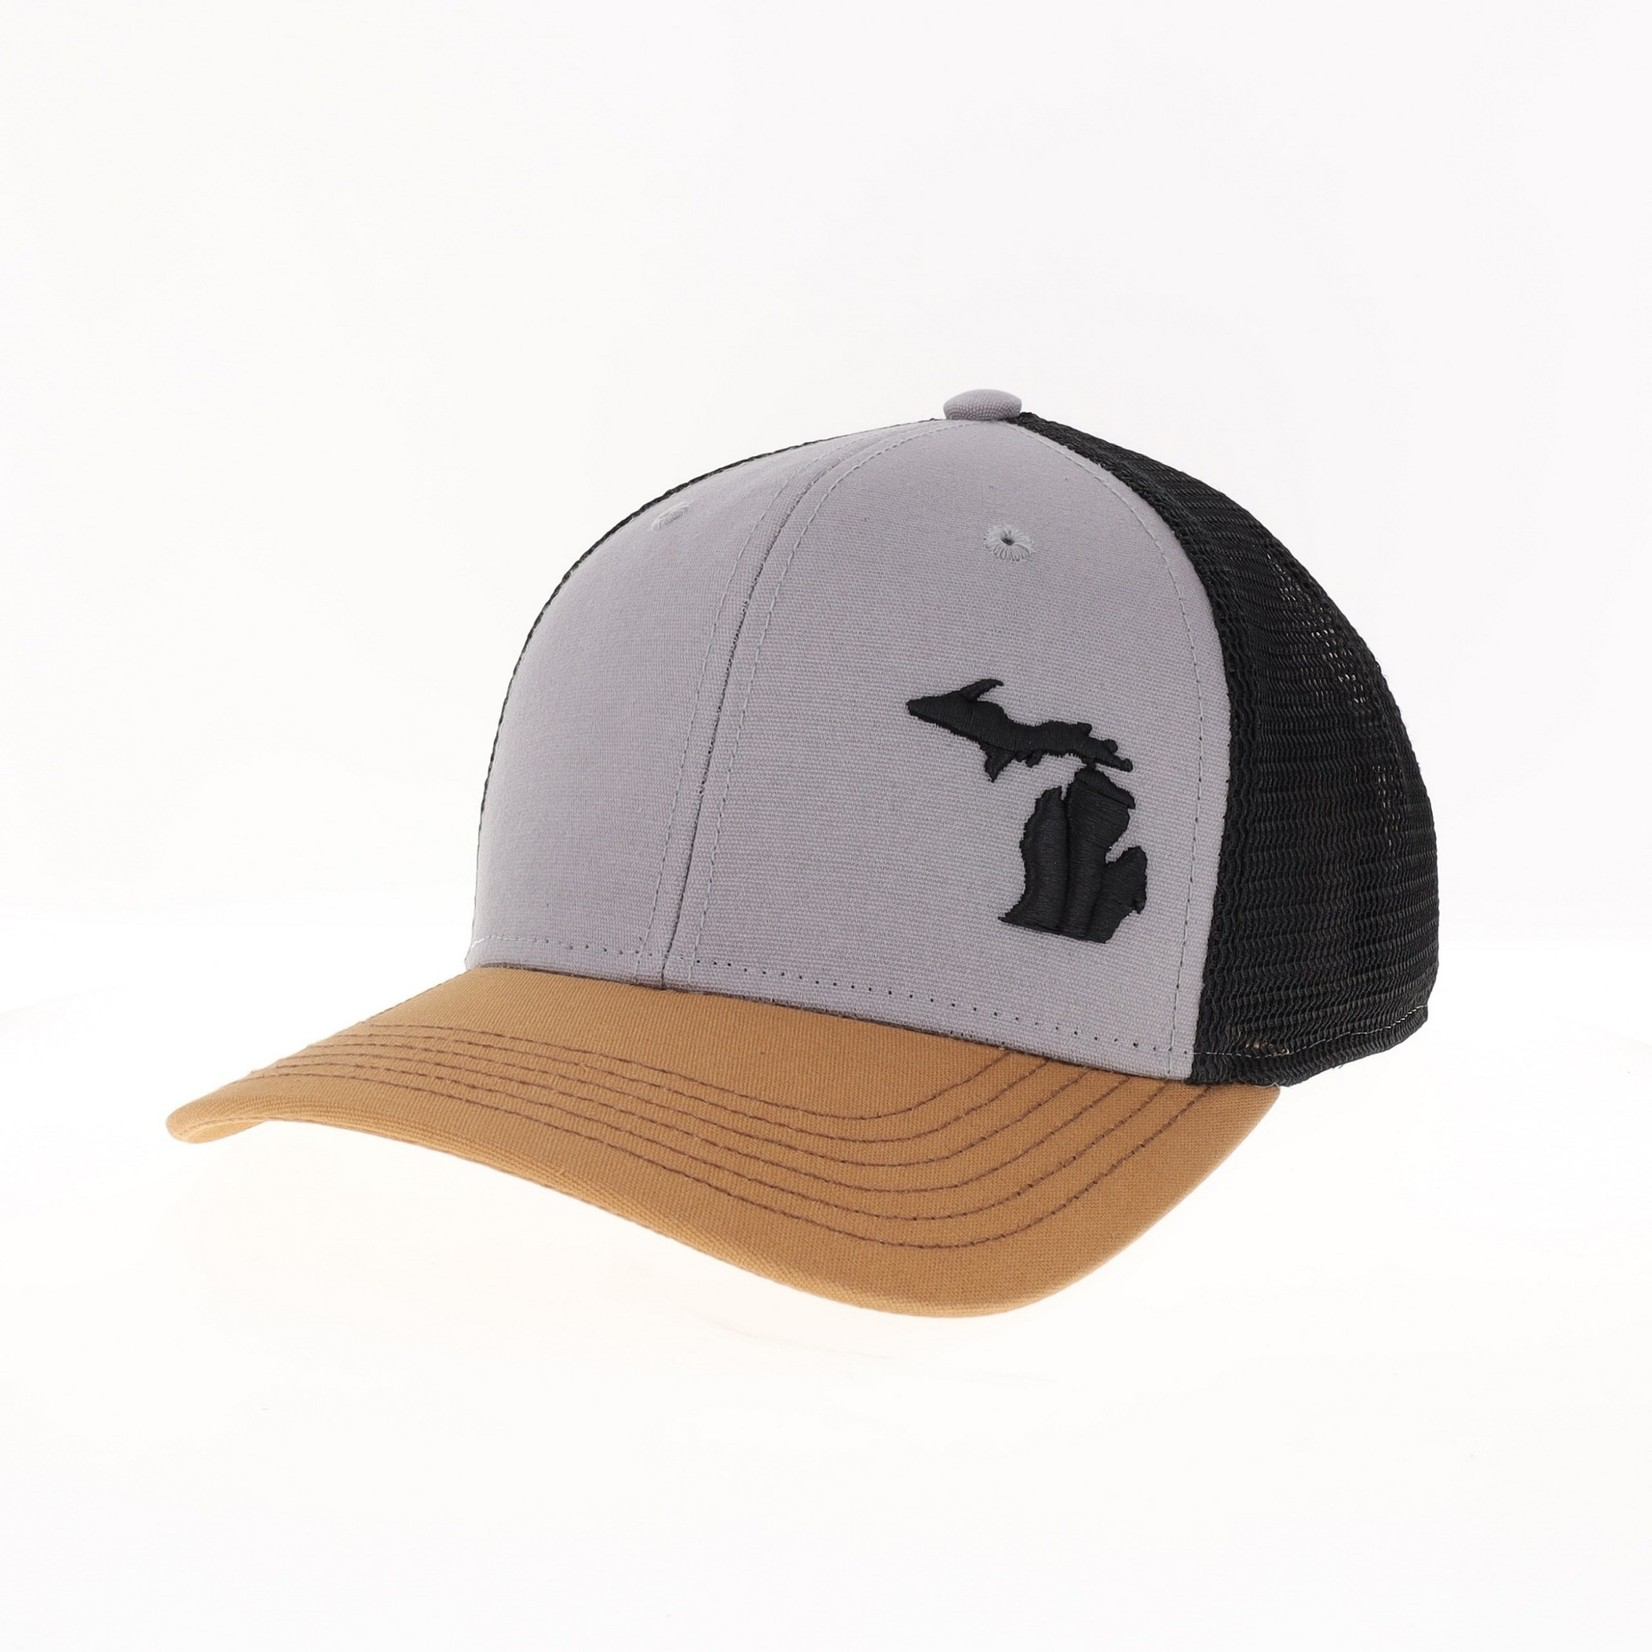 League League Legacy MPS w/ Texicon State of MI Outline Black Offset Trucker Hat - Grey/Caramel/Black